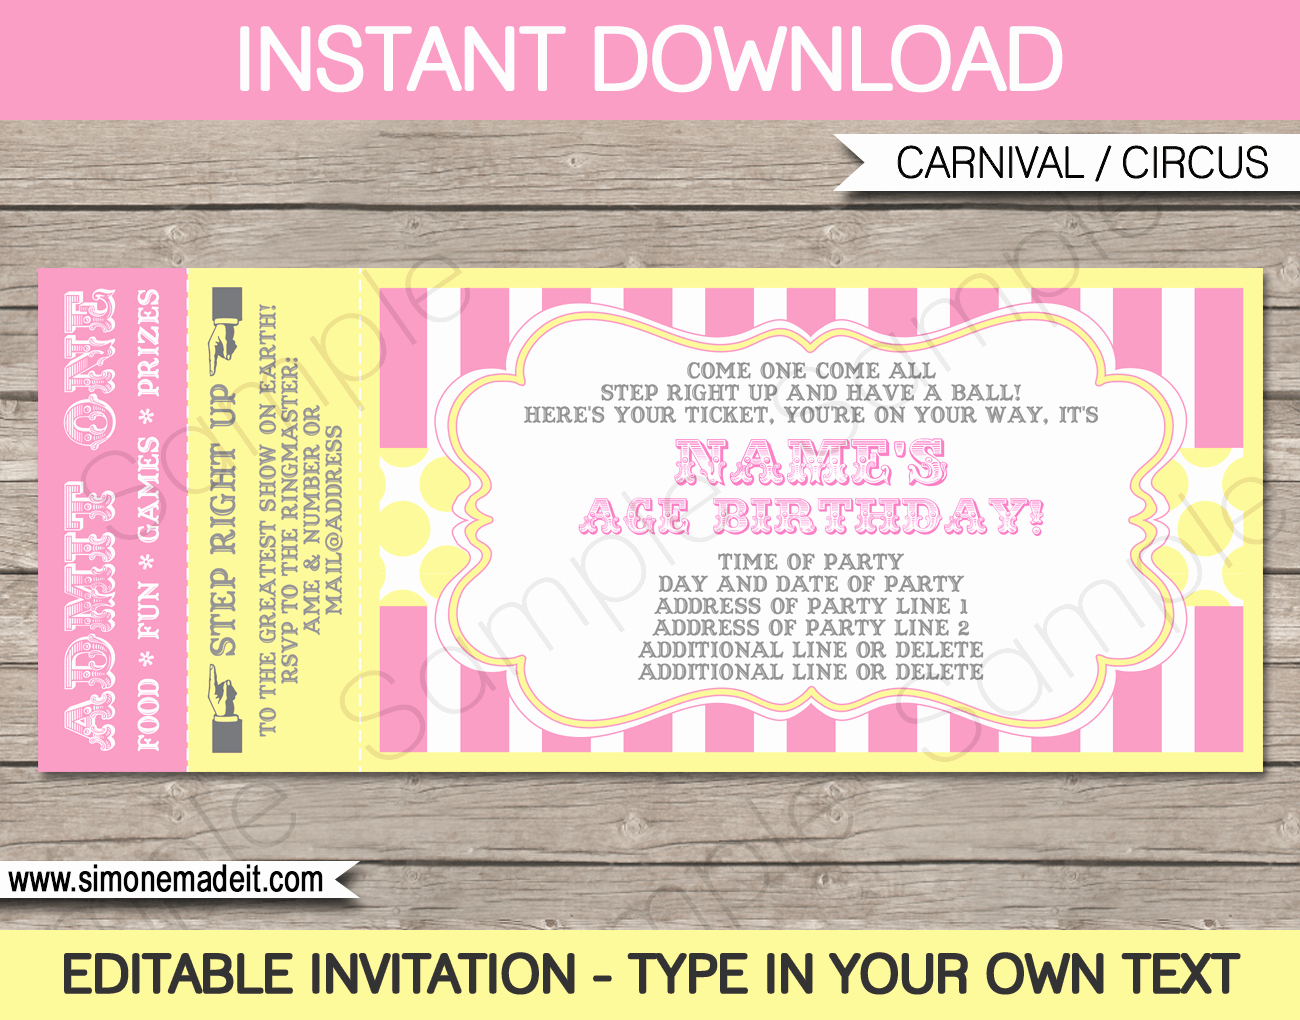 Ticket Invitation Template Free Beautiful Carnival Birthday Ticket Invitation Template